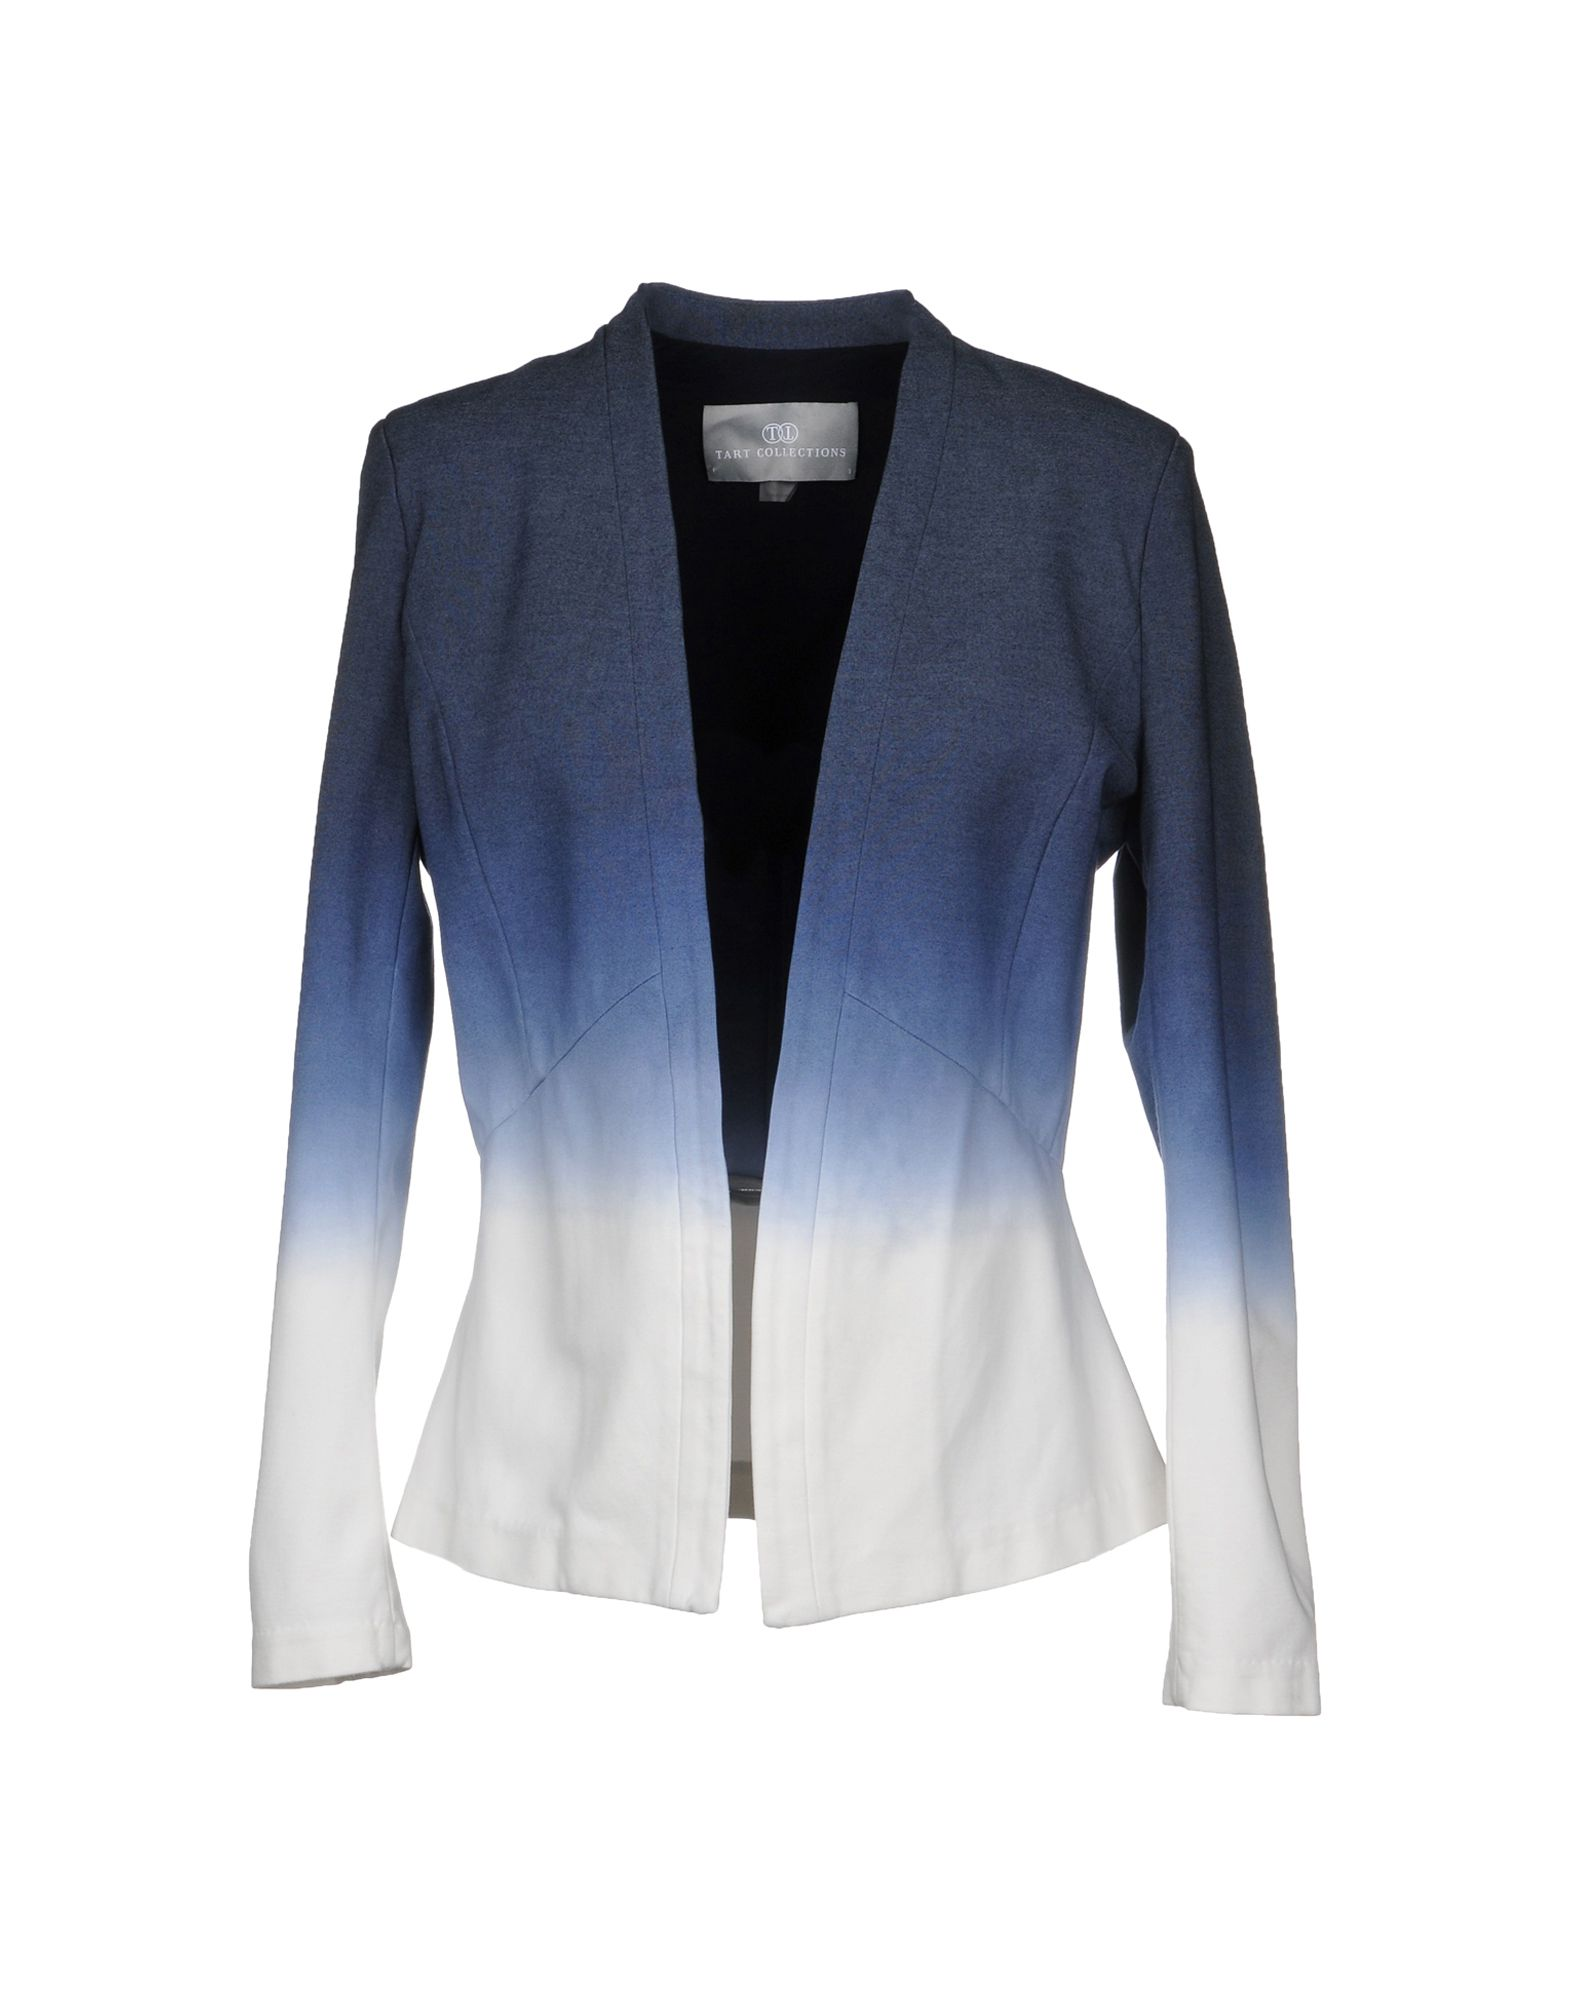 TART COLLECTIONS Blazer in Slate Blue